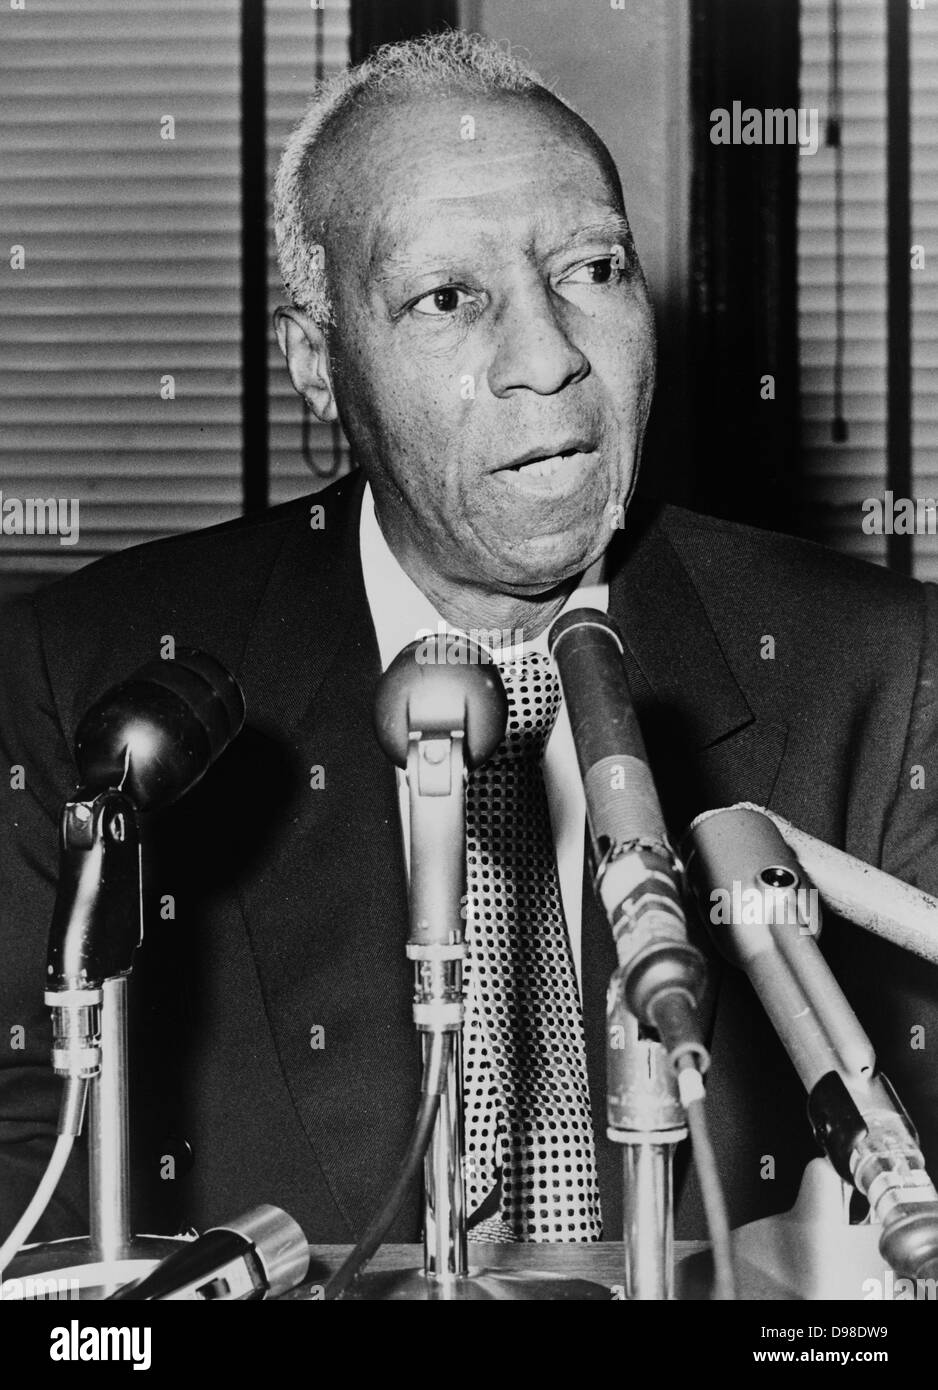 Asa Philip Randolph (1889-1979) prominent African America civil rights leader. - Stock Image